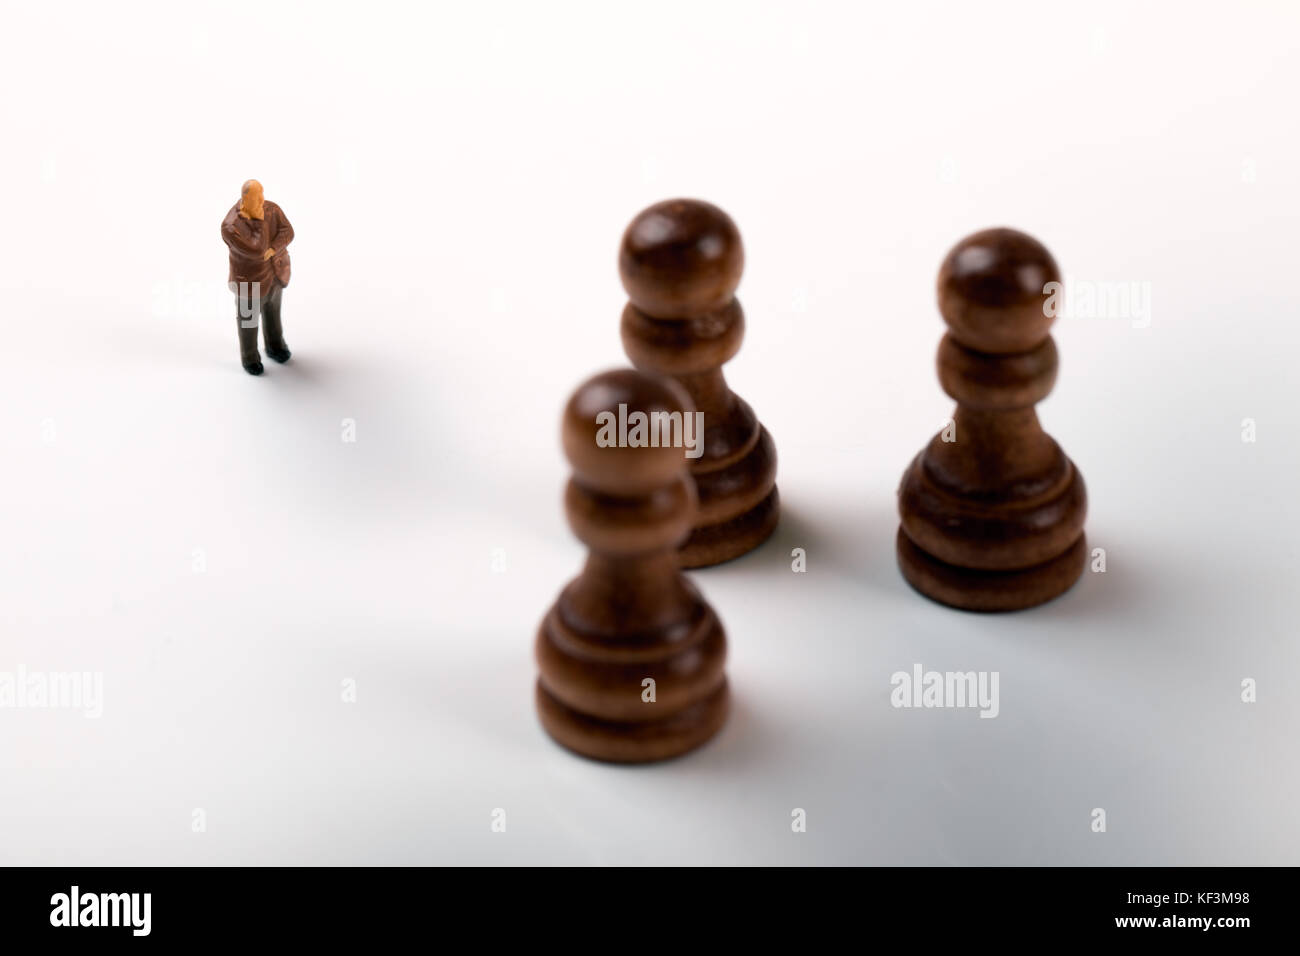 business strategy concept - businessman standing in front of chess pieces - Stock Image